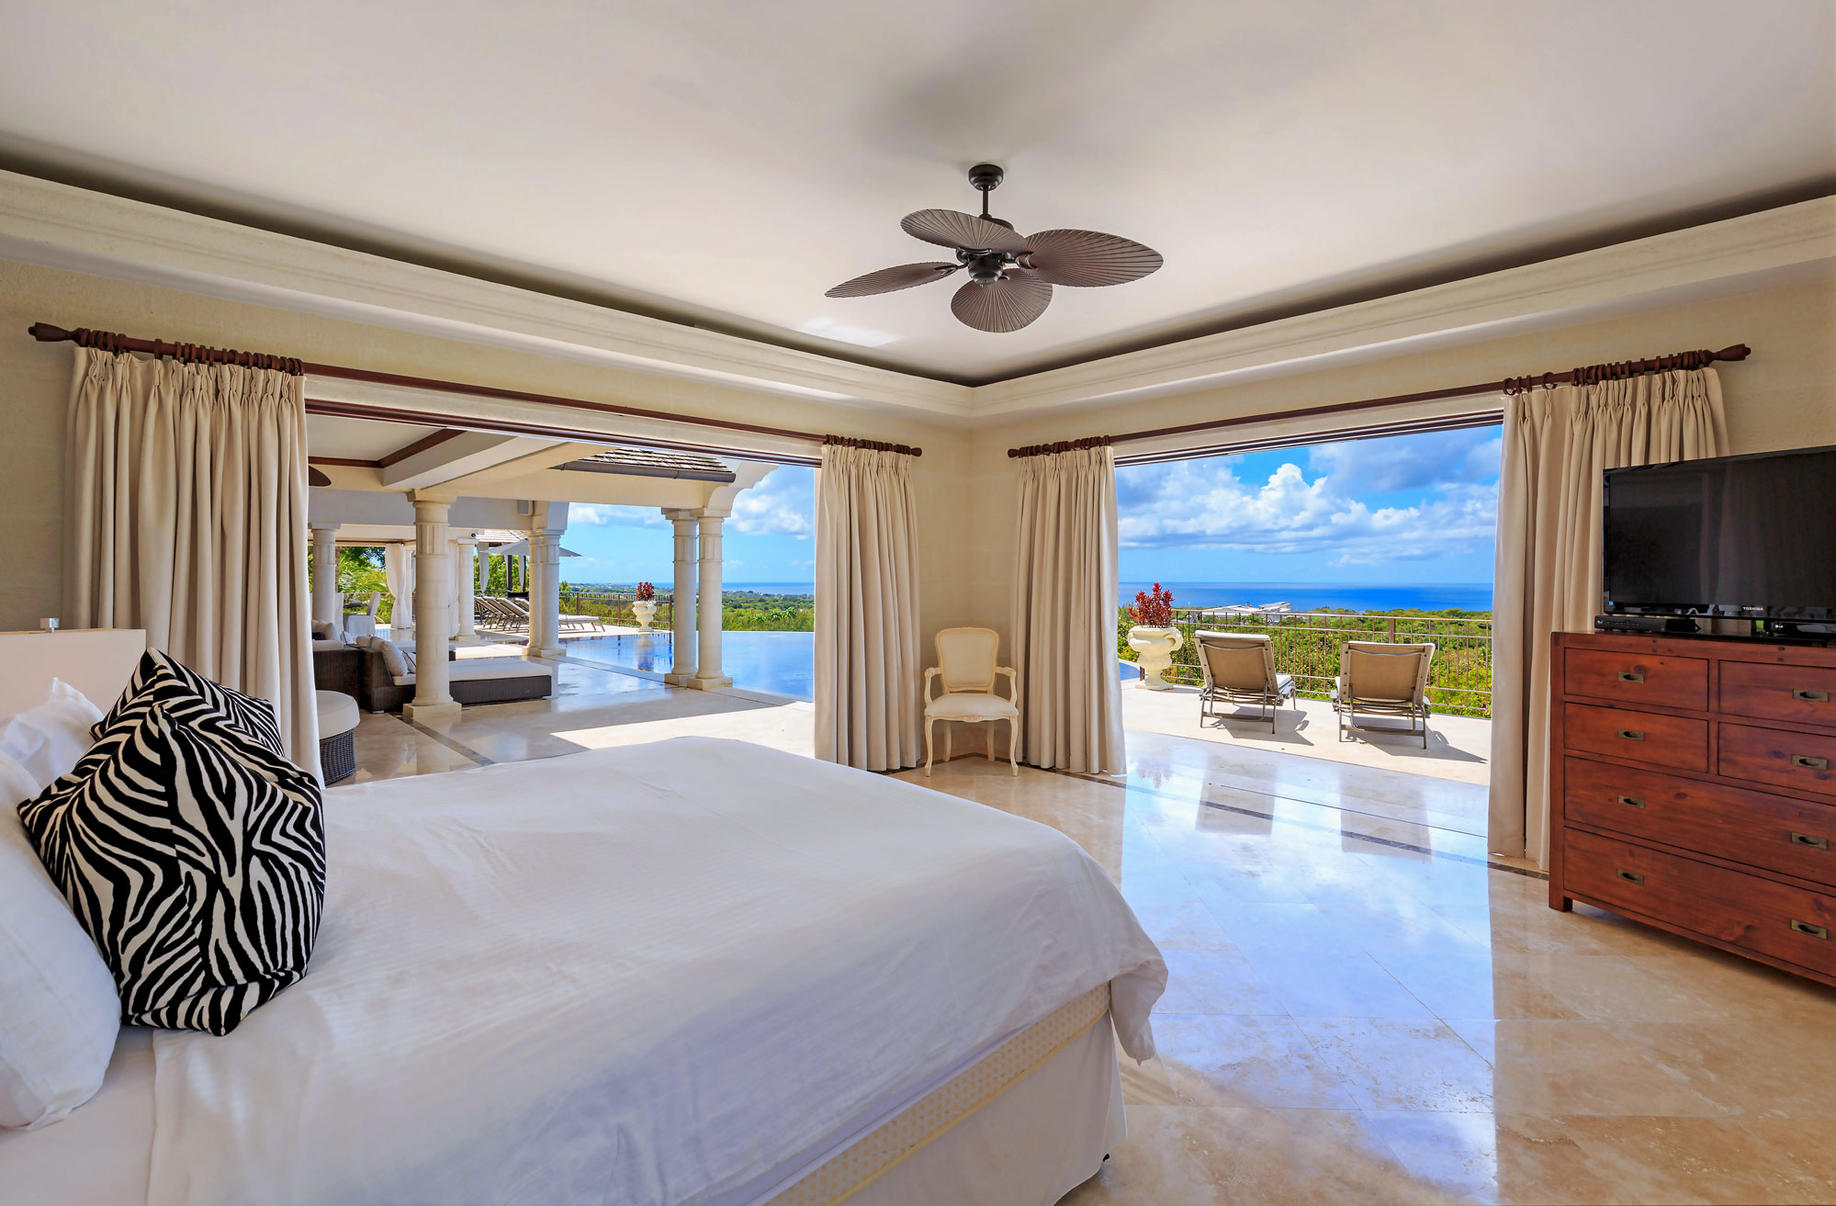 Barbados Villa Connections: Kailani Gallery 9